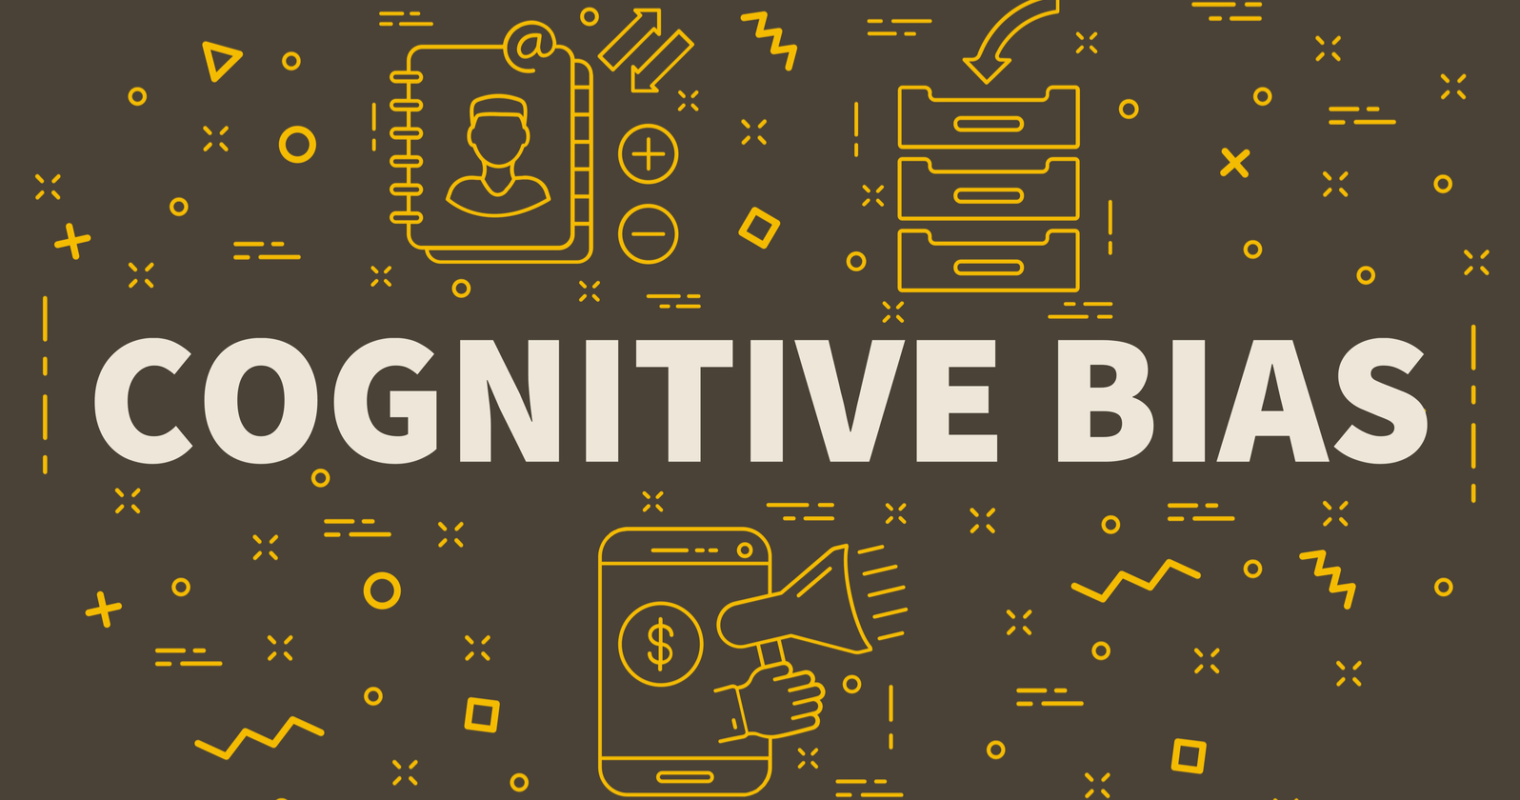 The Psychology of Link Outreach: 21 Cognitive Biases